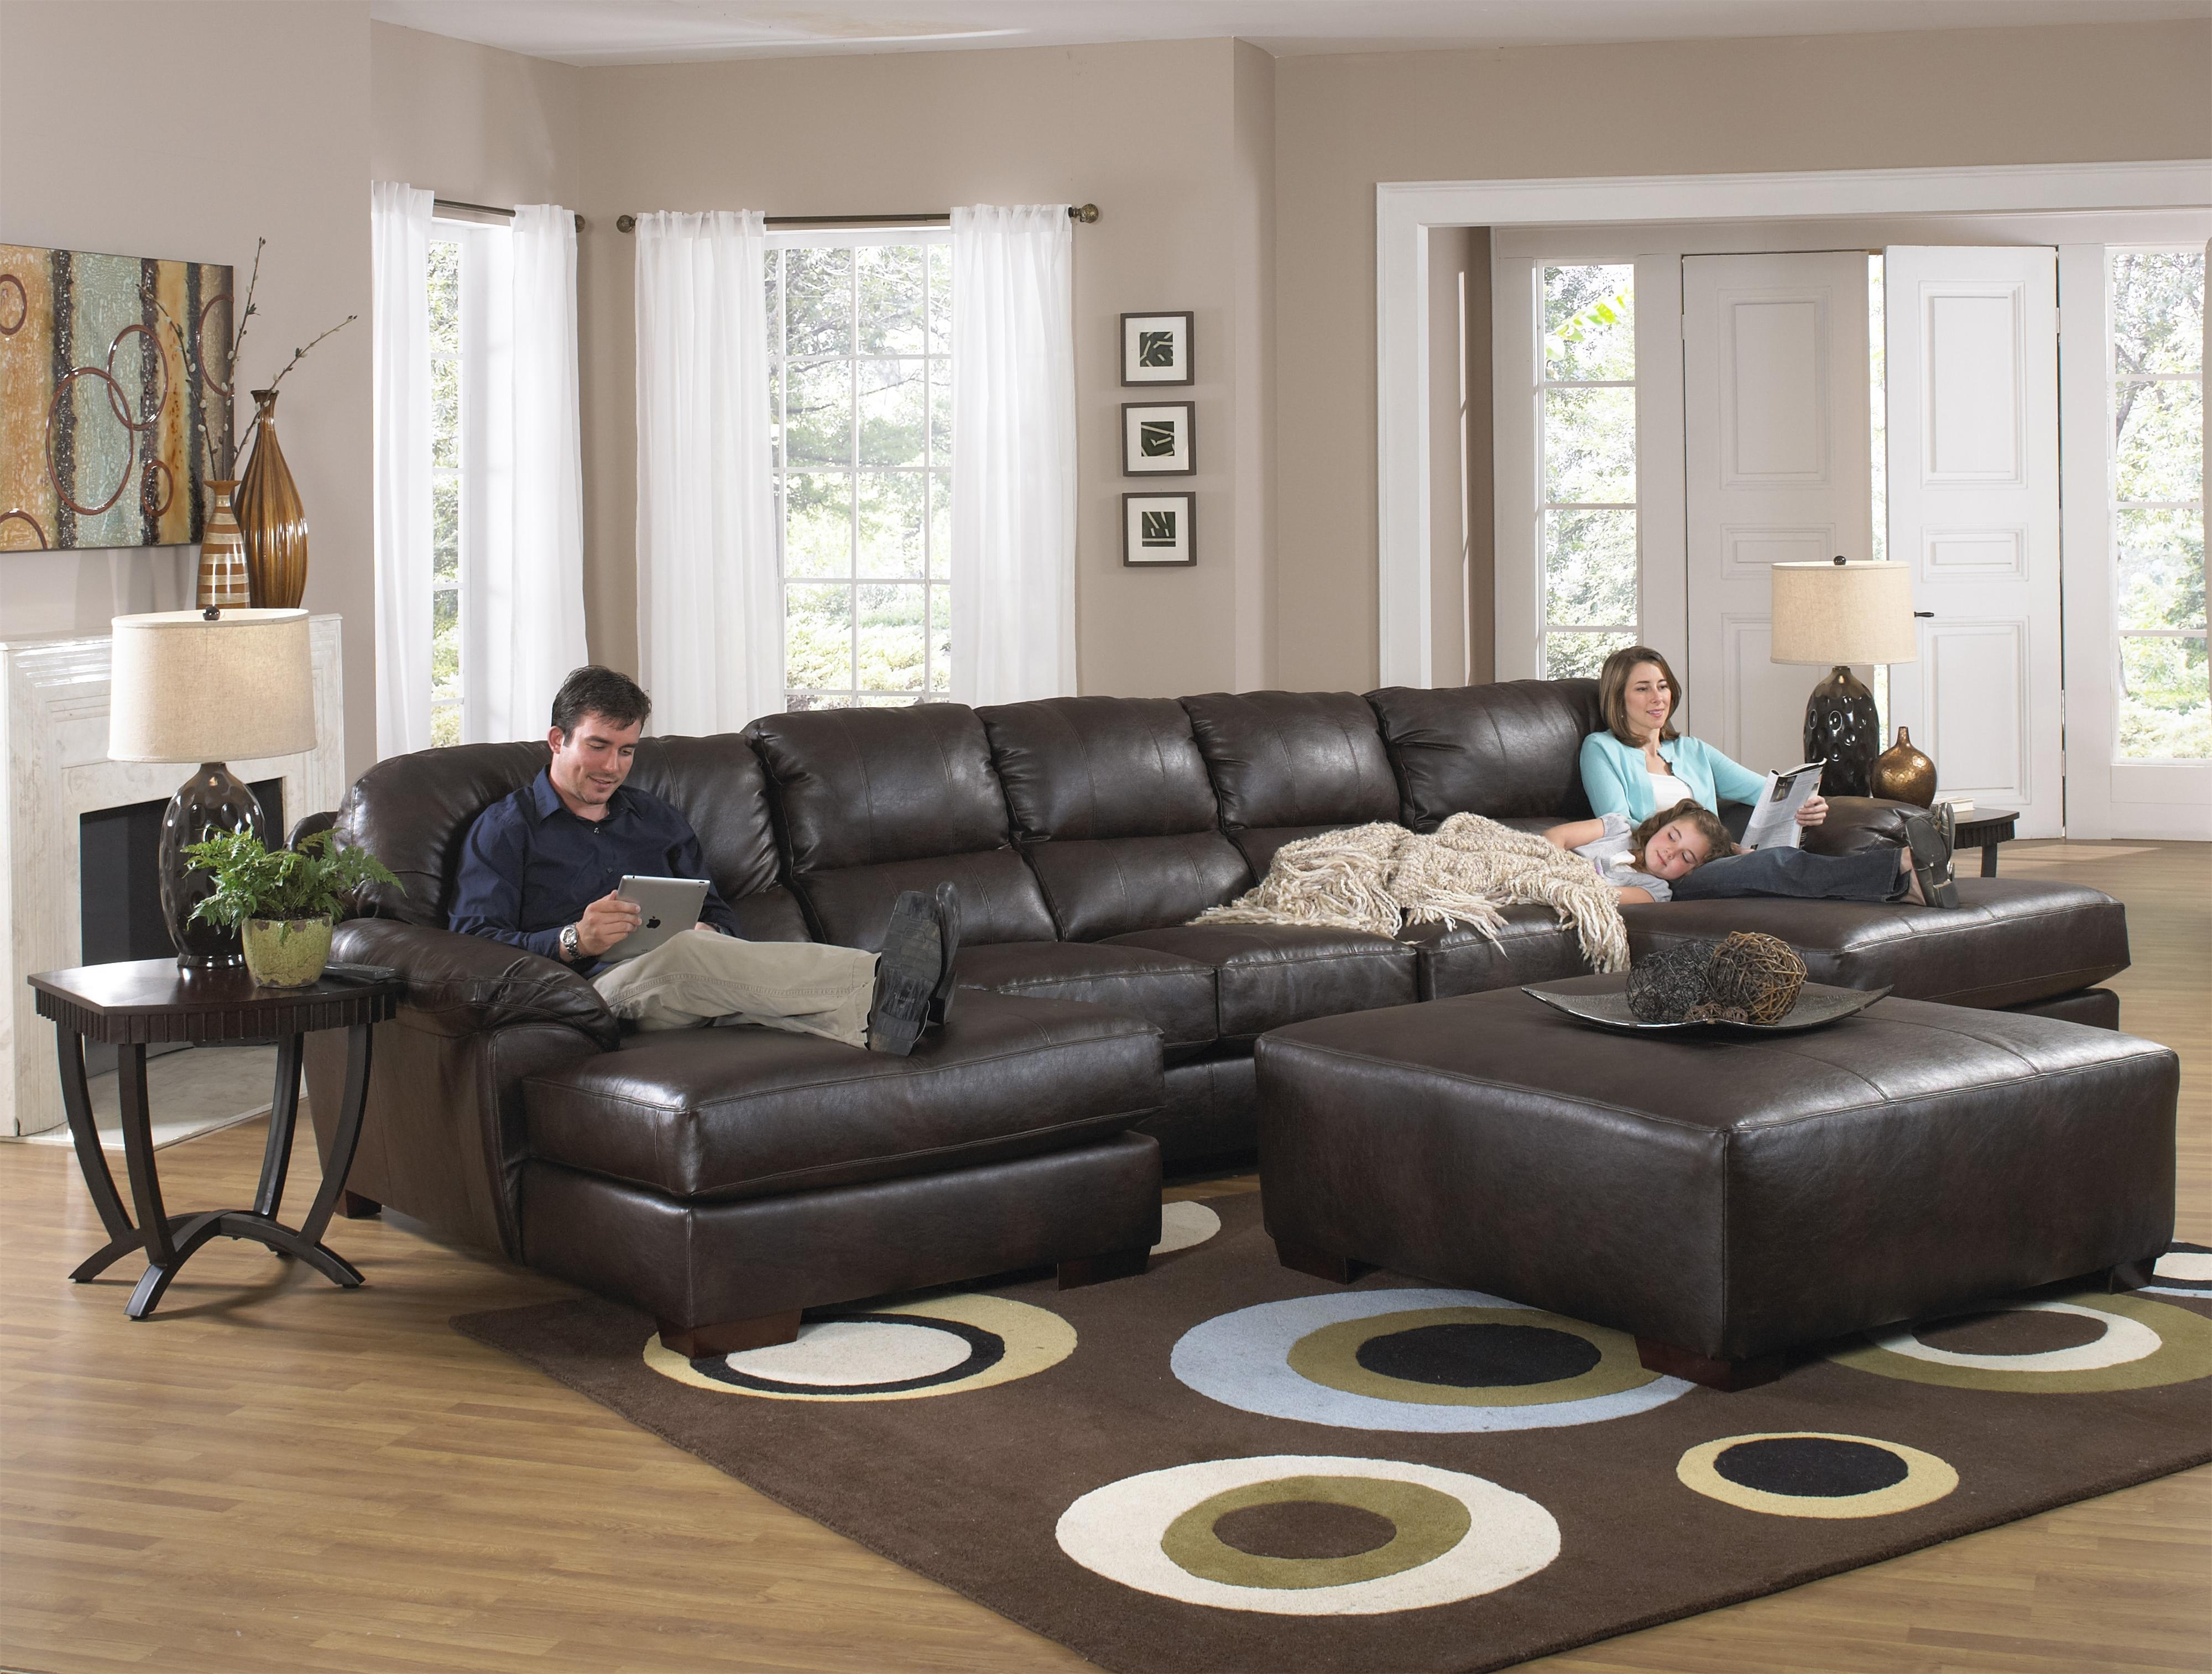 Sofa : Beautiful Large Sectional Sofa With Chaise L Shaped Cream Intended For Fashionable Sectional Sofas (View 14 of 15)